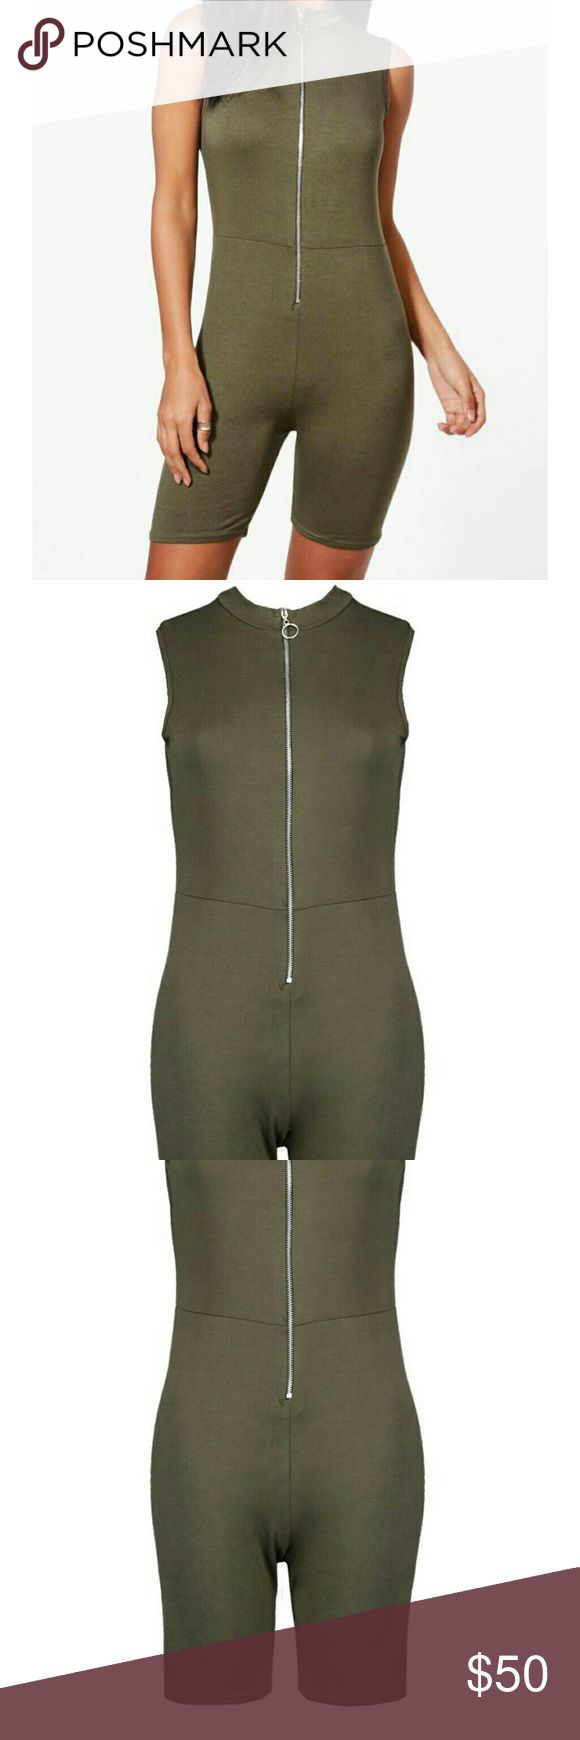 Olive green zip body suit shorts new size 10/med New olive green zip up shorts body suit, very soft & lovely to wear feel. Poly/elastine. Size 10 I have this & love it! I wear mine under my see through tattoo dresses so i can be comfortable & looks great alone or undeneath! * I have this in black also. See other listing.  Price firm No trades , boutique style. Intimates & Sleepwear Shapewear